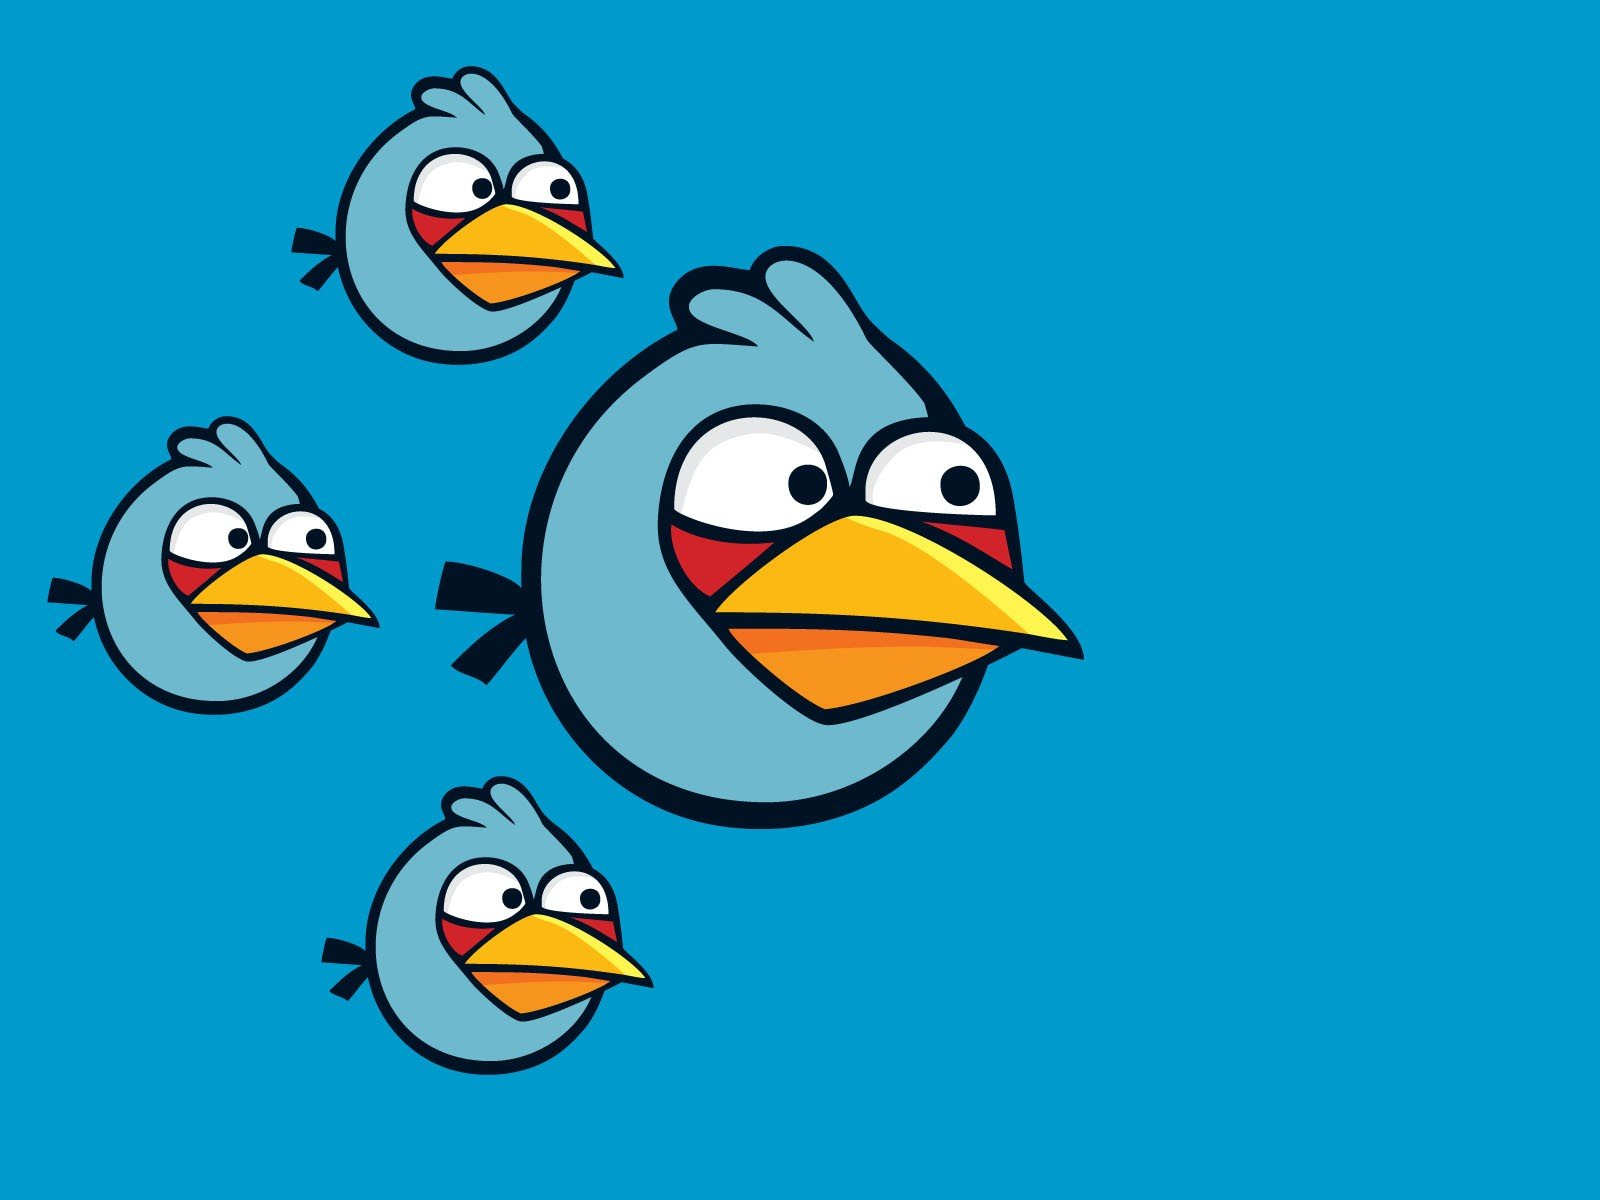 Blue Freedom Angry Angry Birds Simple Background Blue Bird Wallpaper 1600x1200 316261 Wallpaperup